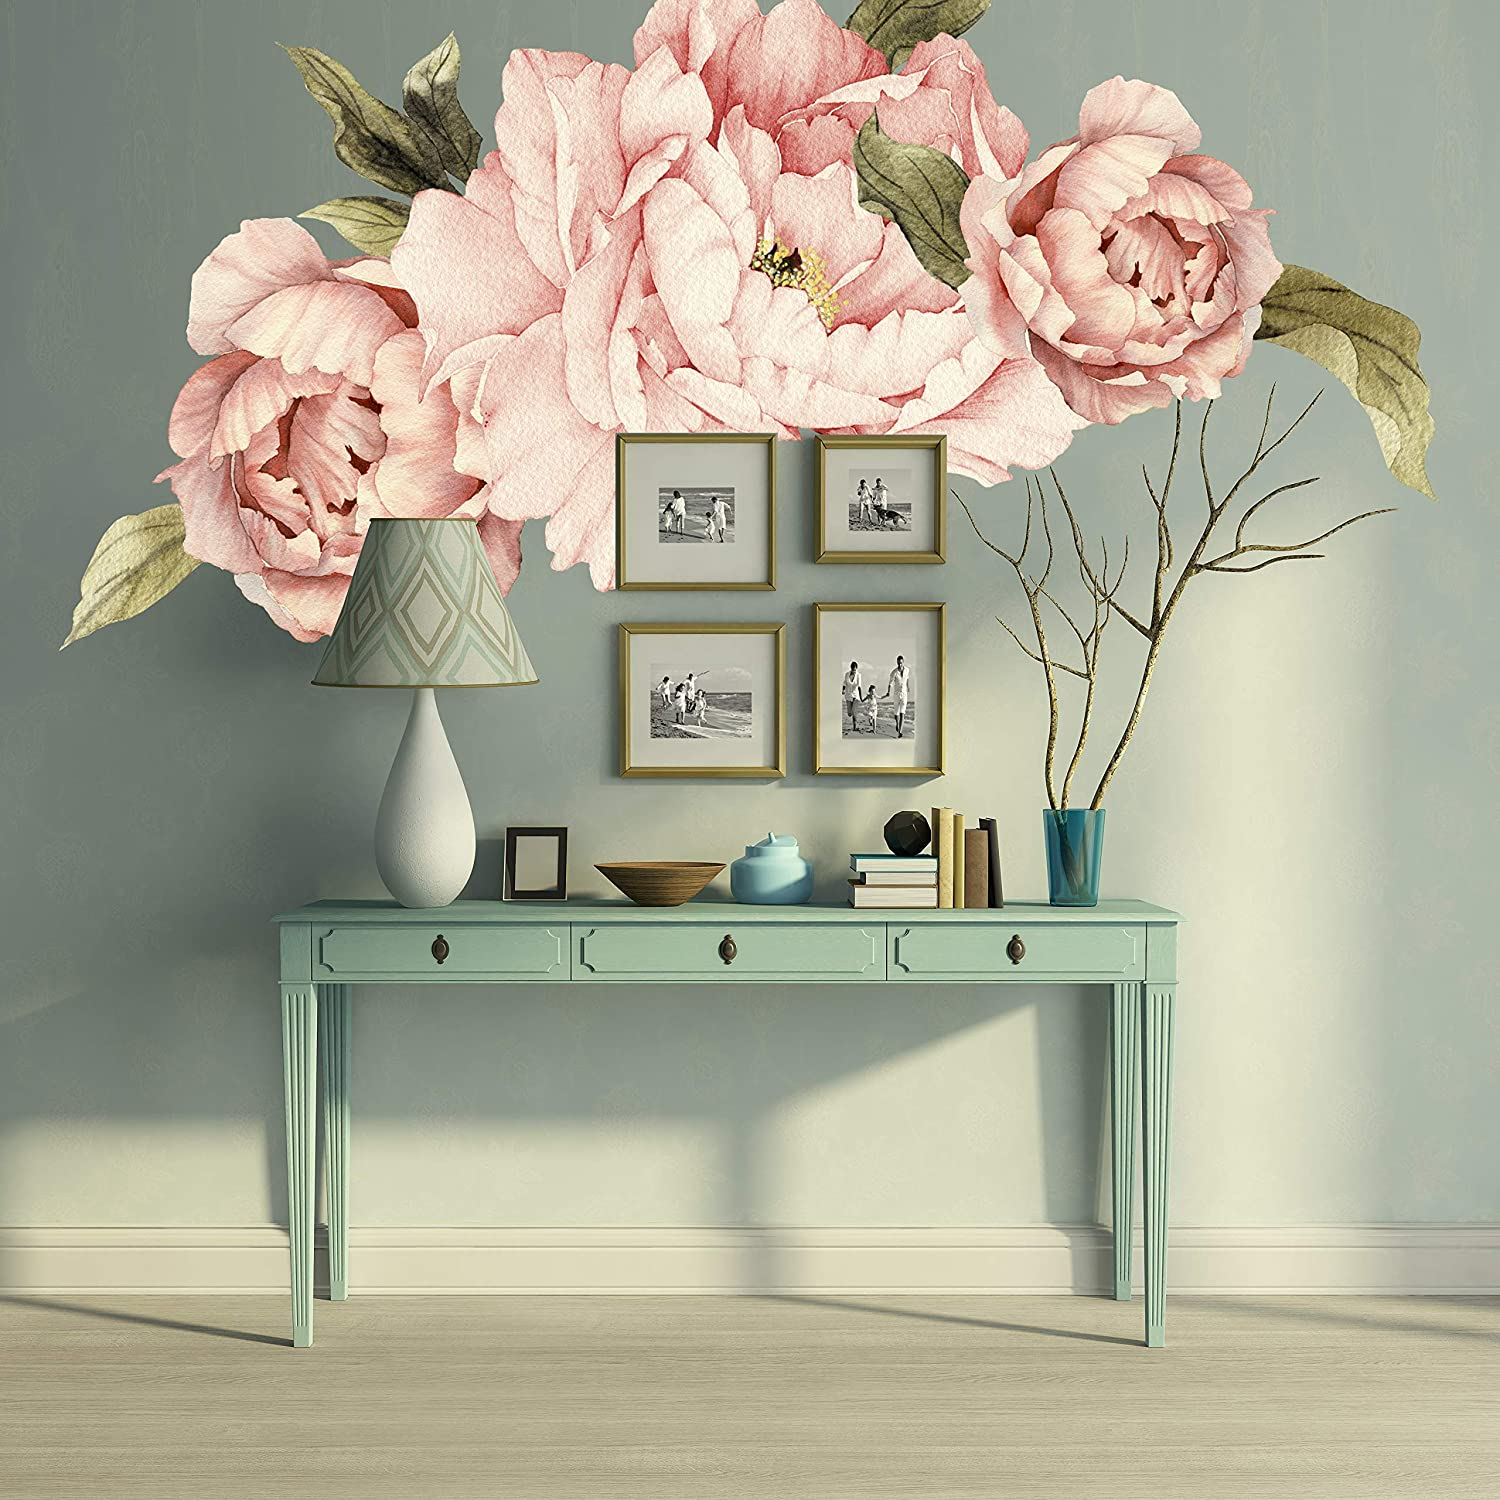 Murwall Pink Peonies Wall Decals Max 51% OFF and Now free shipping Decal Stic Floral Peel